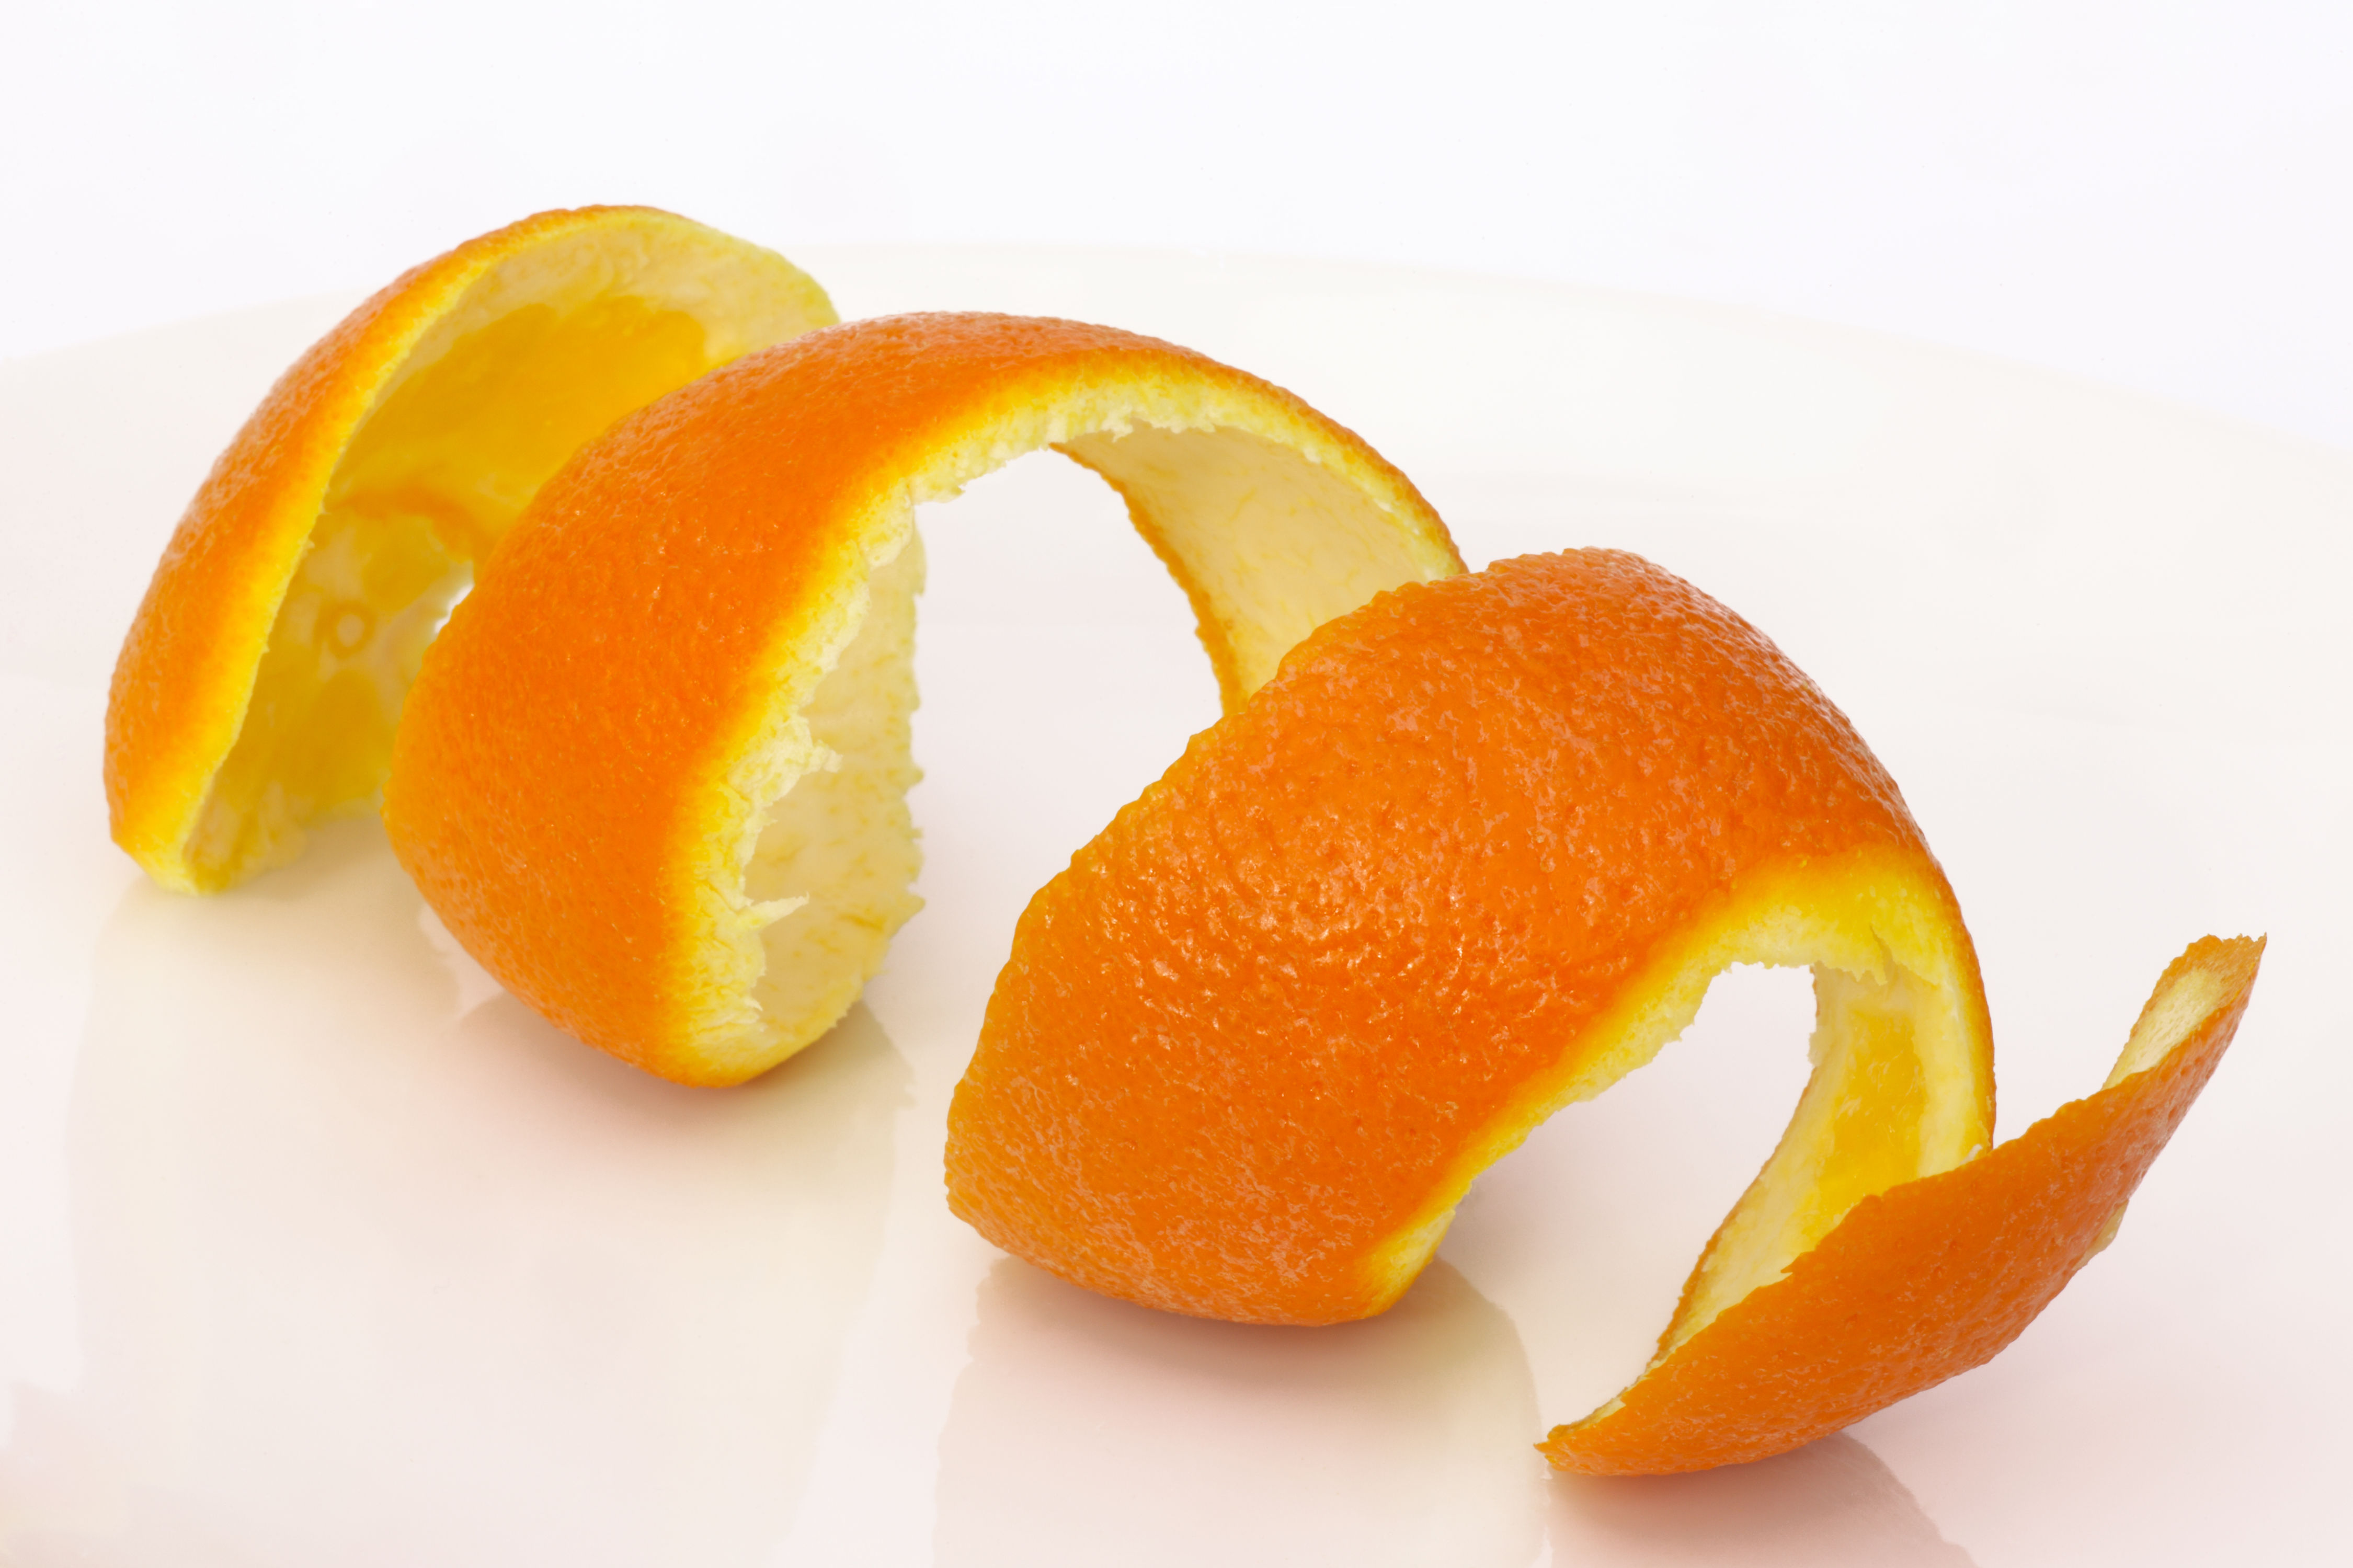 Why You Should Stop Tossing Your Citrus Peels